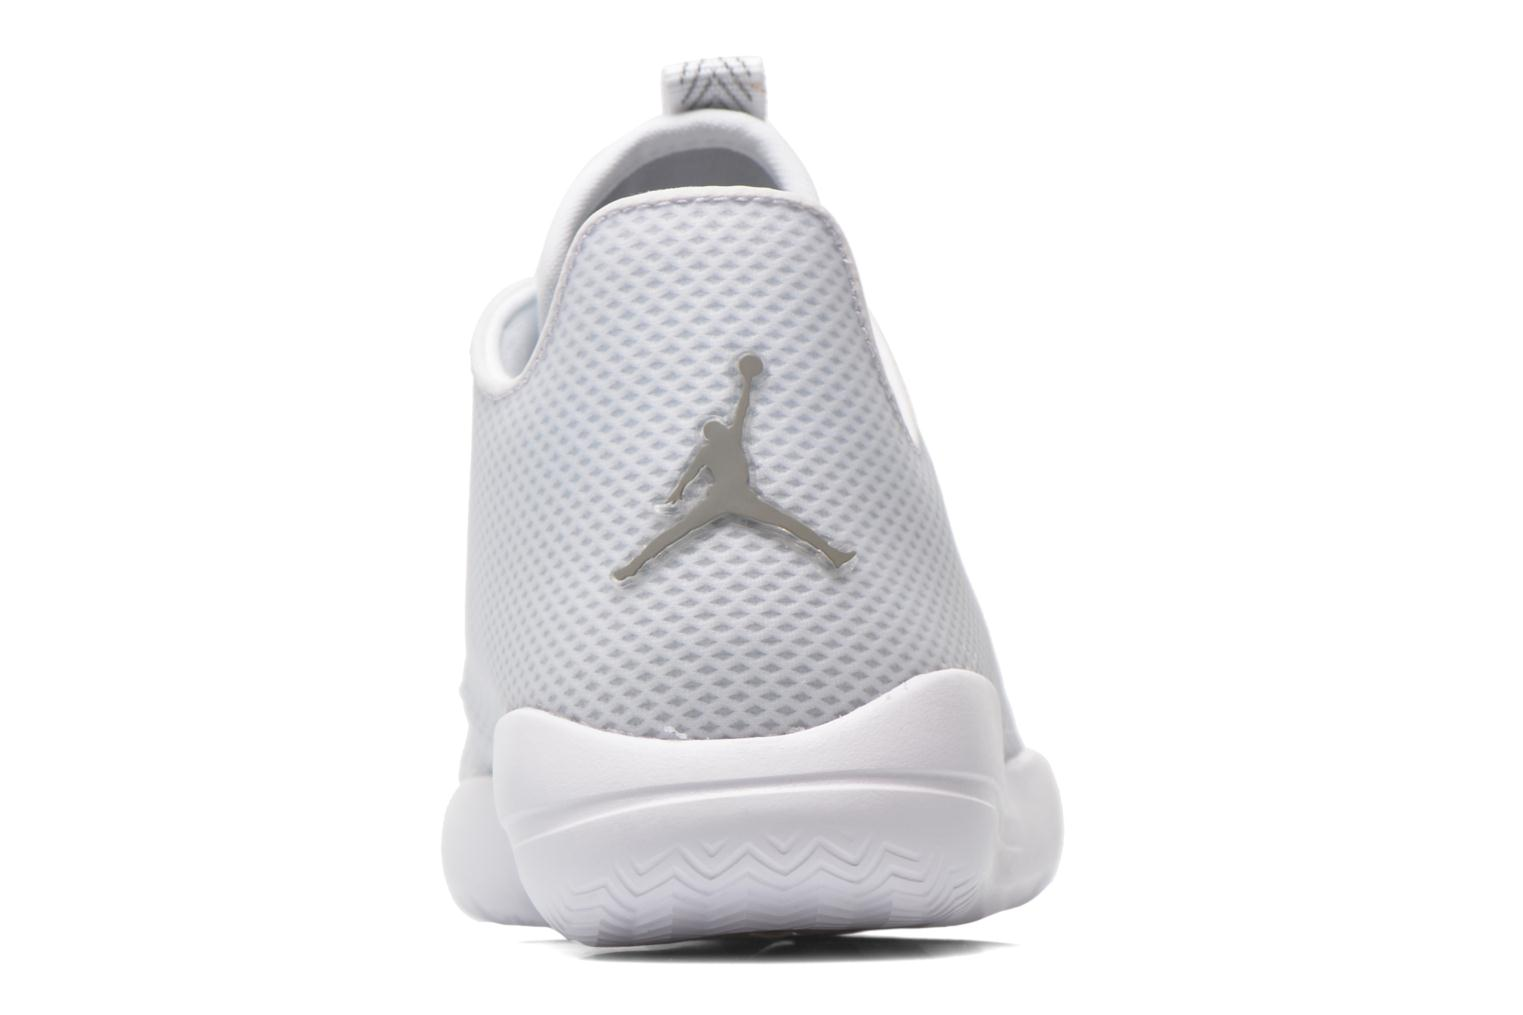 Jordan Eclipse Bg White/White-Pure Platinum